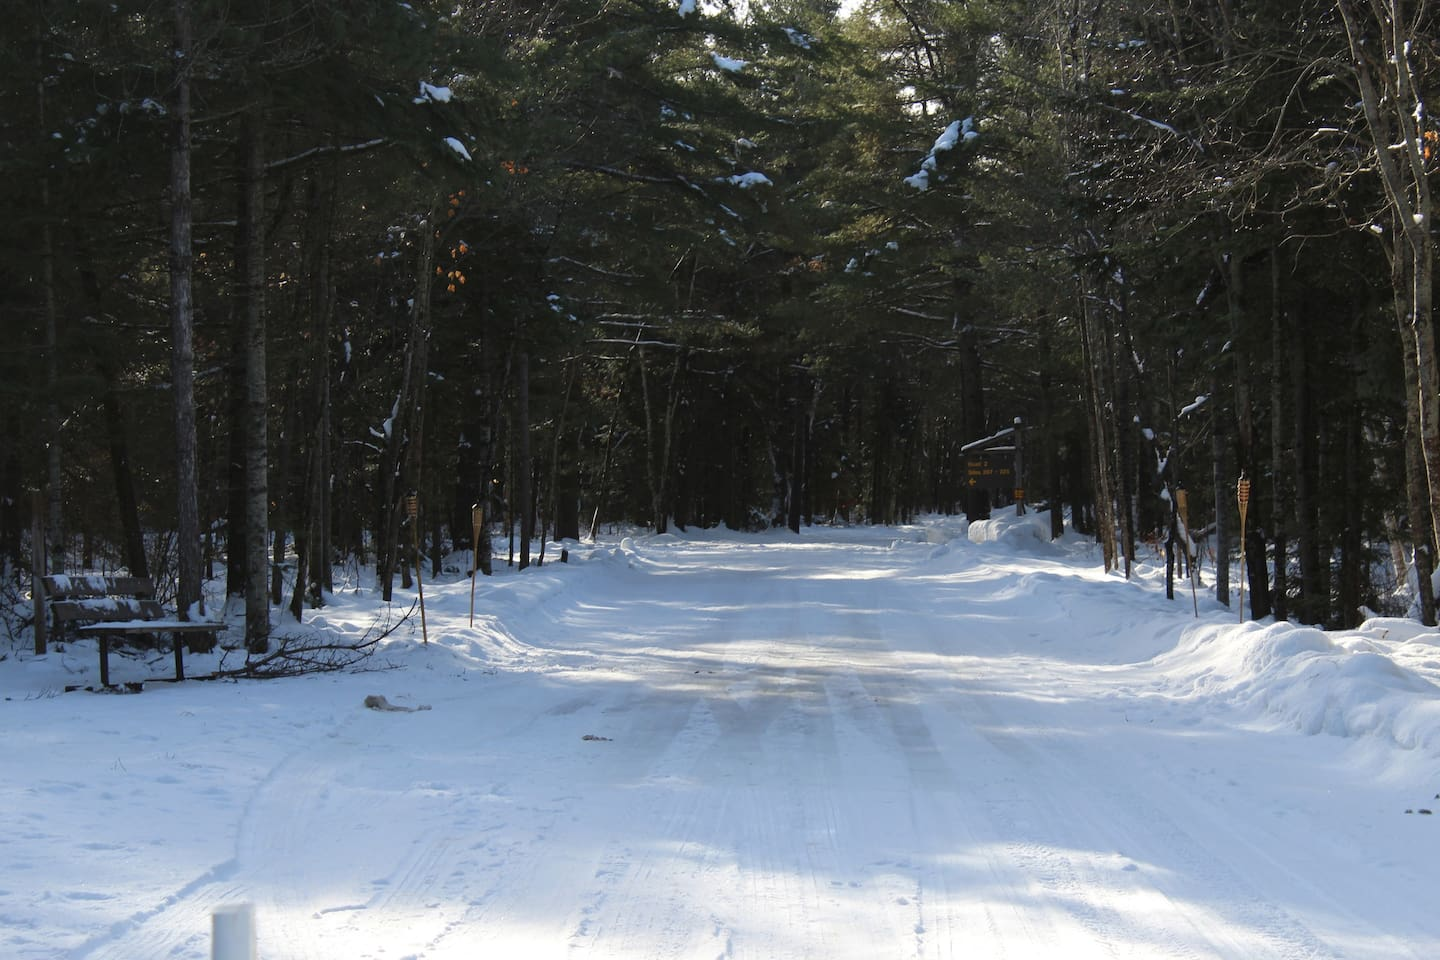 Arrowhead Provincial Park Skating Trail 1.3 km loop. Lit up with tiki torches on special nights. Subject to weather condition